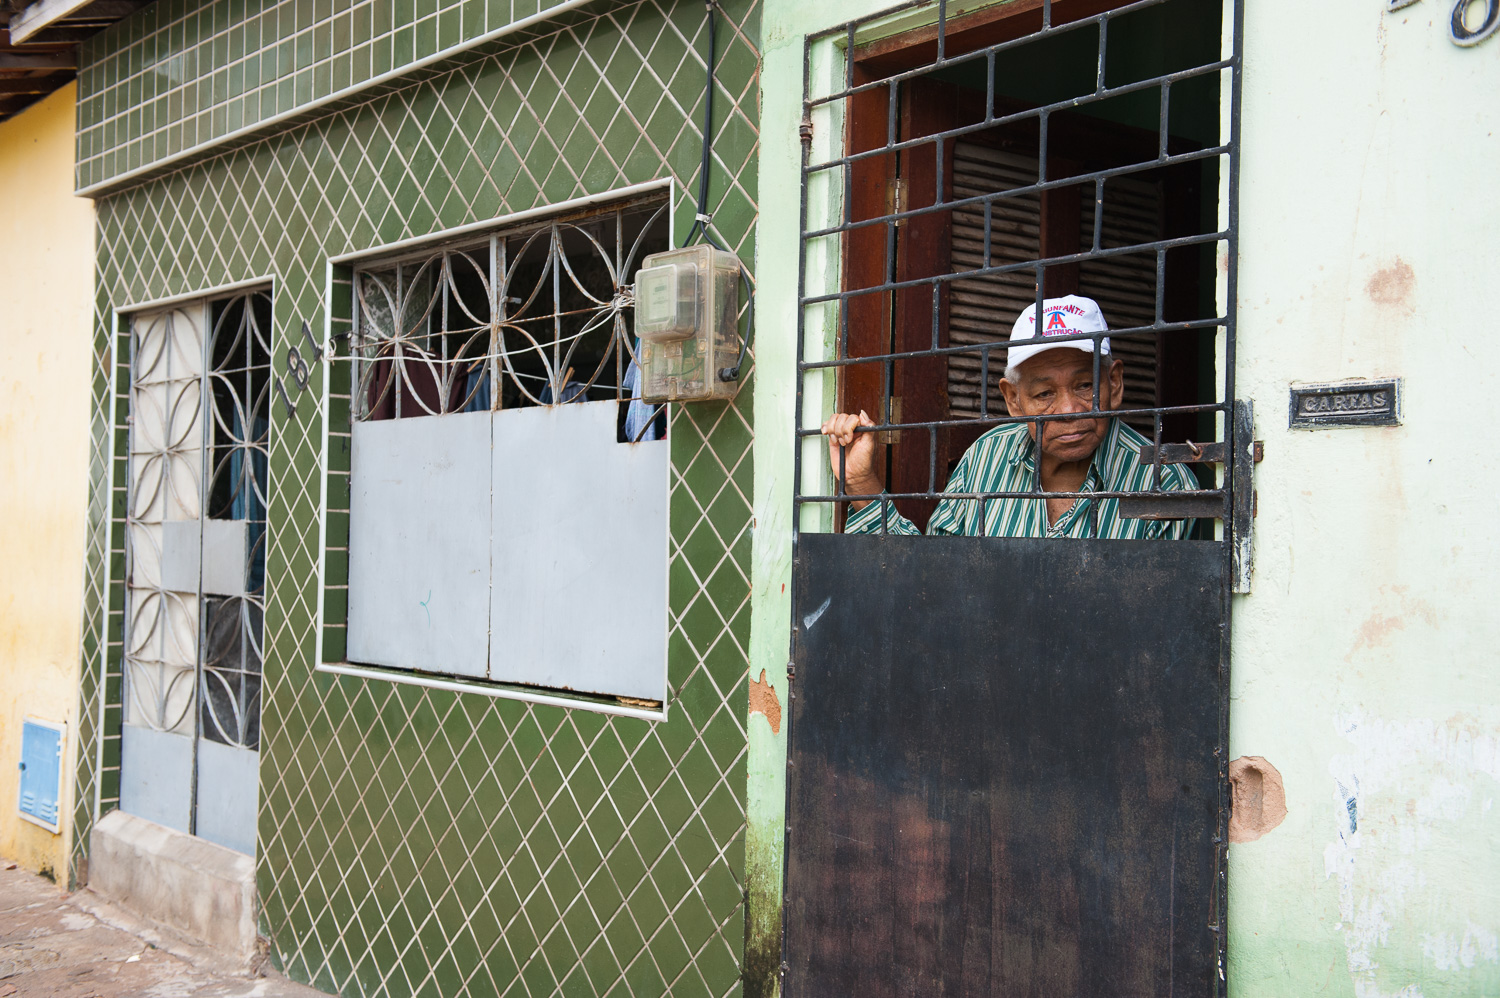 An elderly man who had been evicted from his home on the ocean looks out from his new home in the favela (slum) Poco da Draga, which may be demolished for a parking lot.